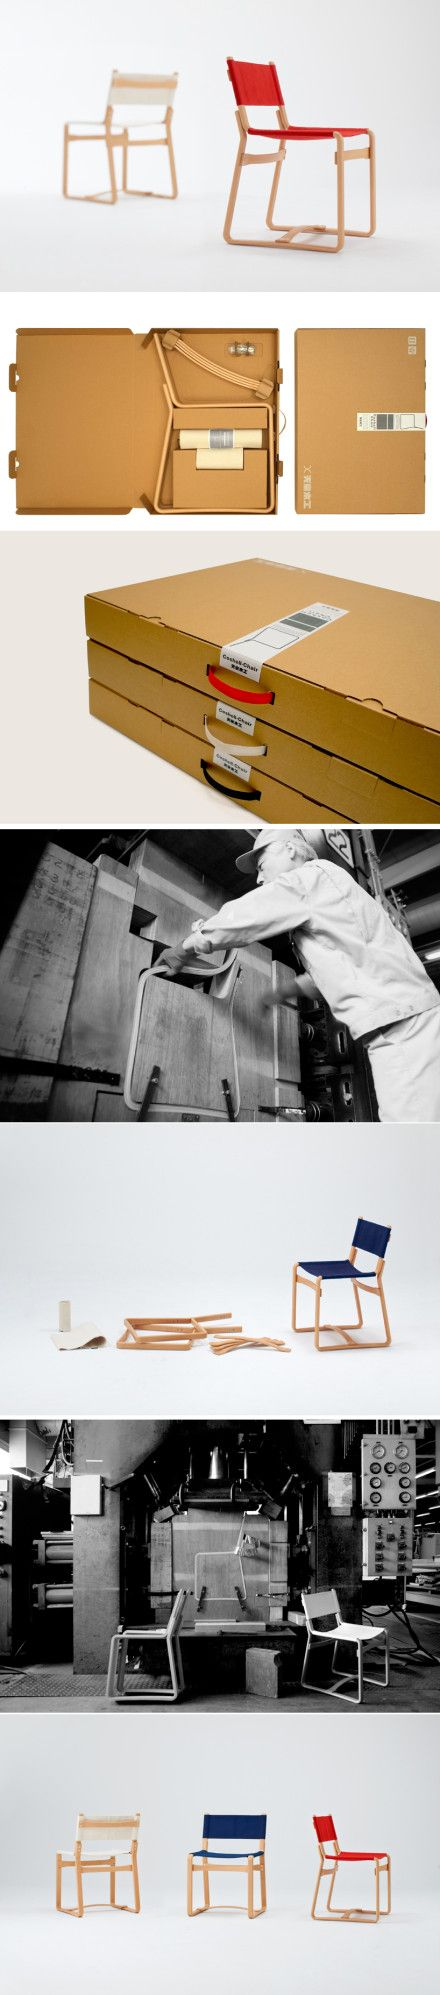 """""""Tendo woodworking ... images from wood Chi Workshop share"""